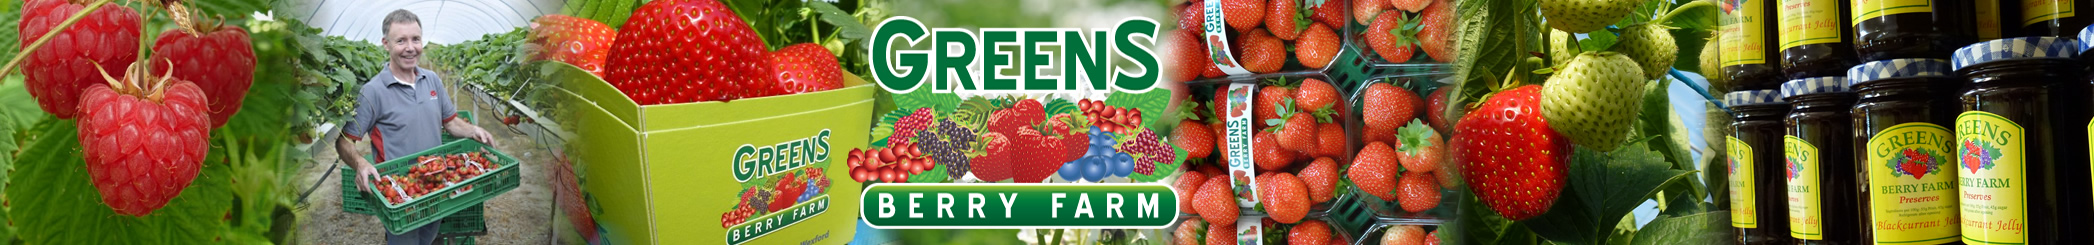 Green's Berry Farm | Wexford Strawberries and Fruit Farm Produce